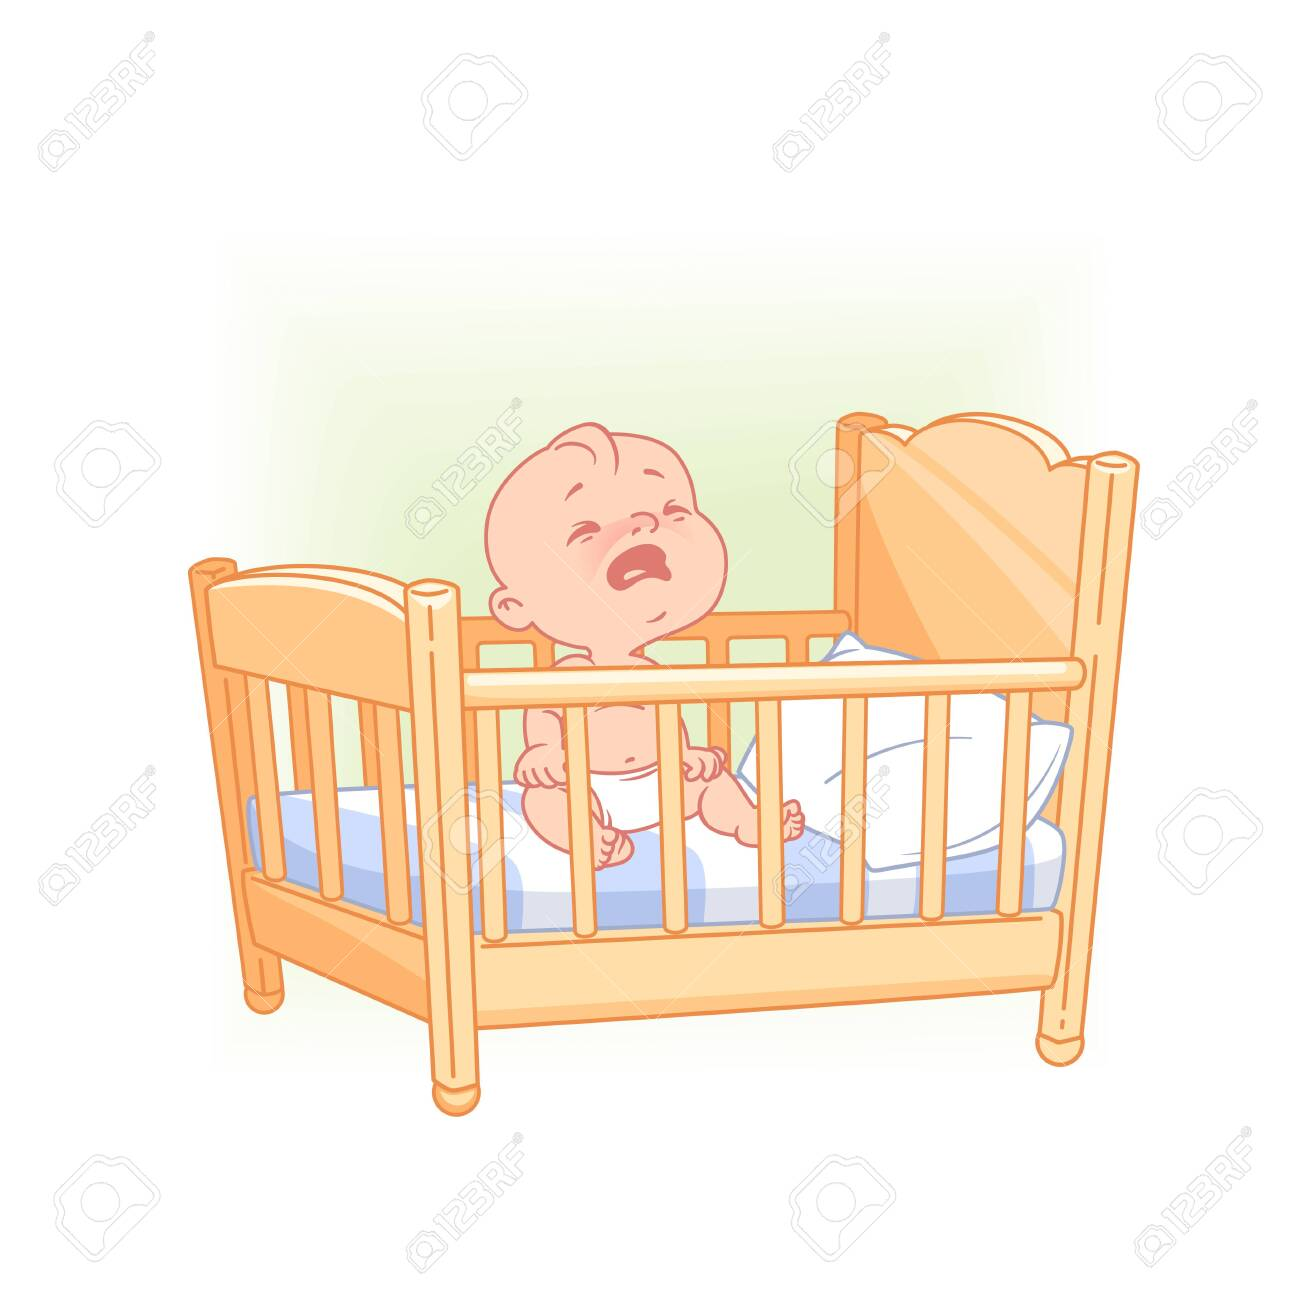 Cute little baby sit awake crying in bed. - 126067387